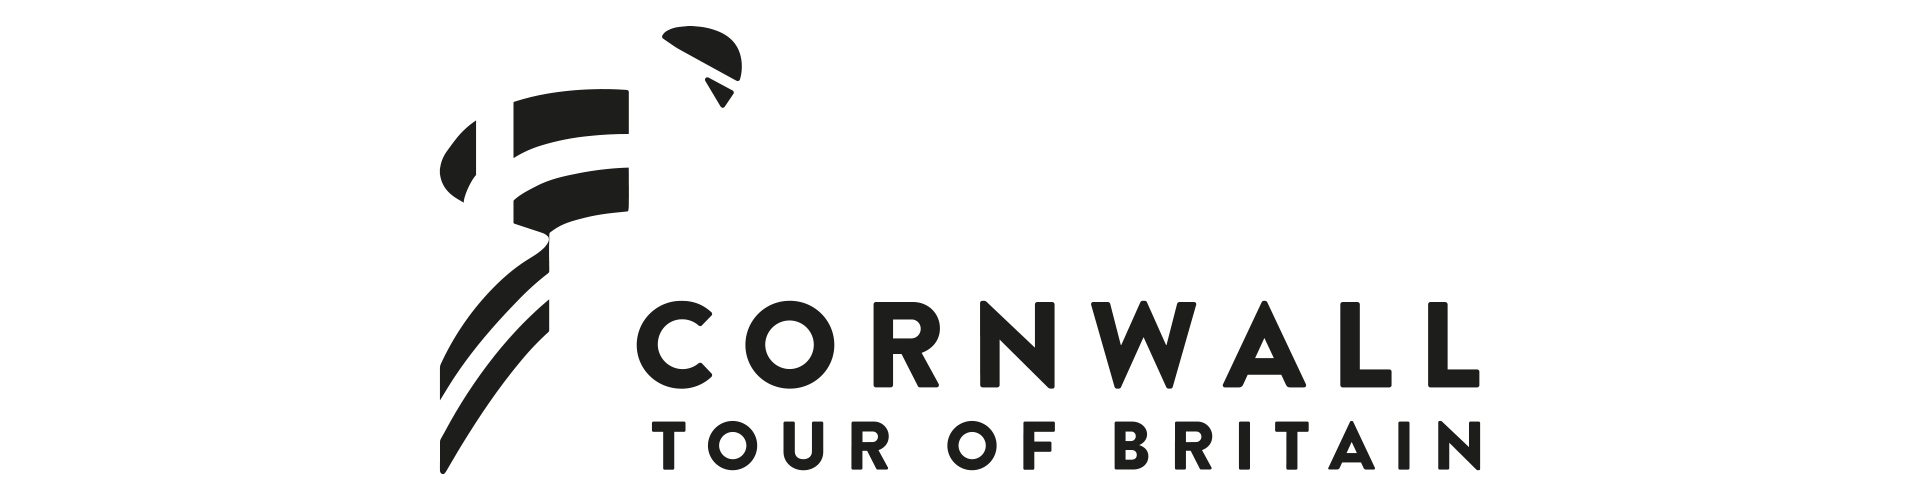 Cornwall Tour of Britain logo.